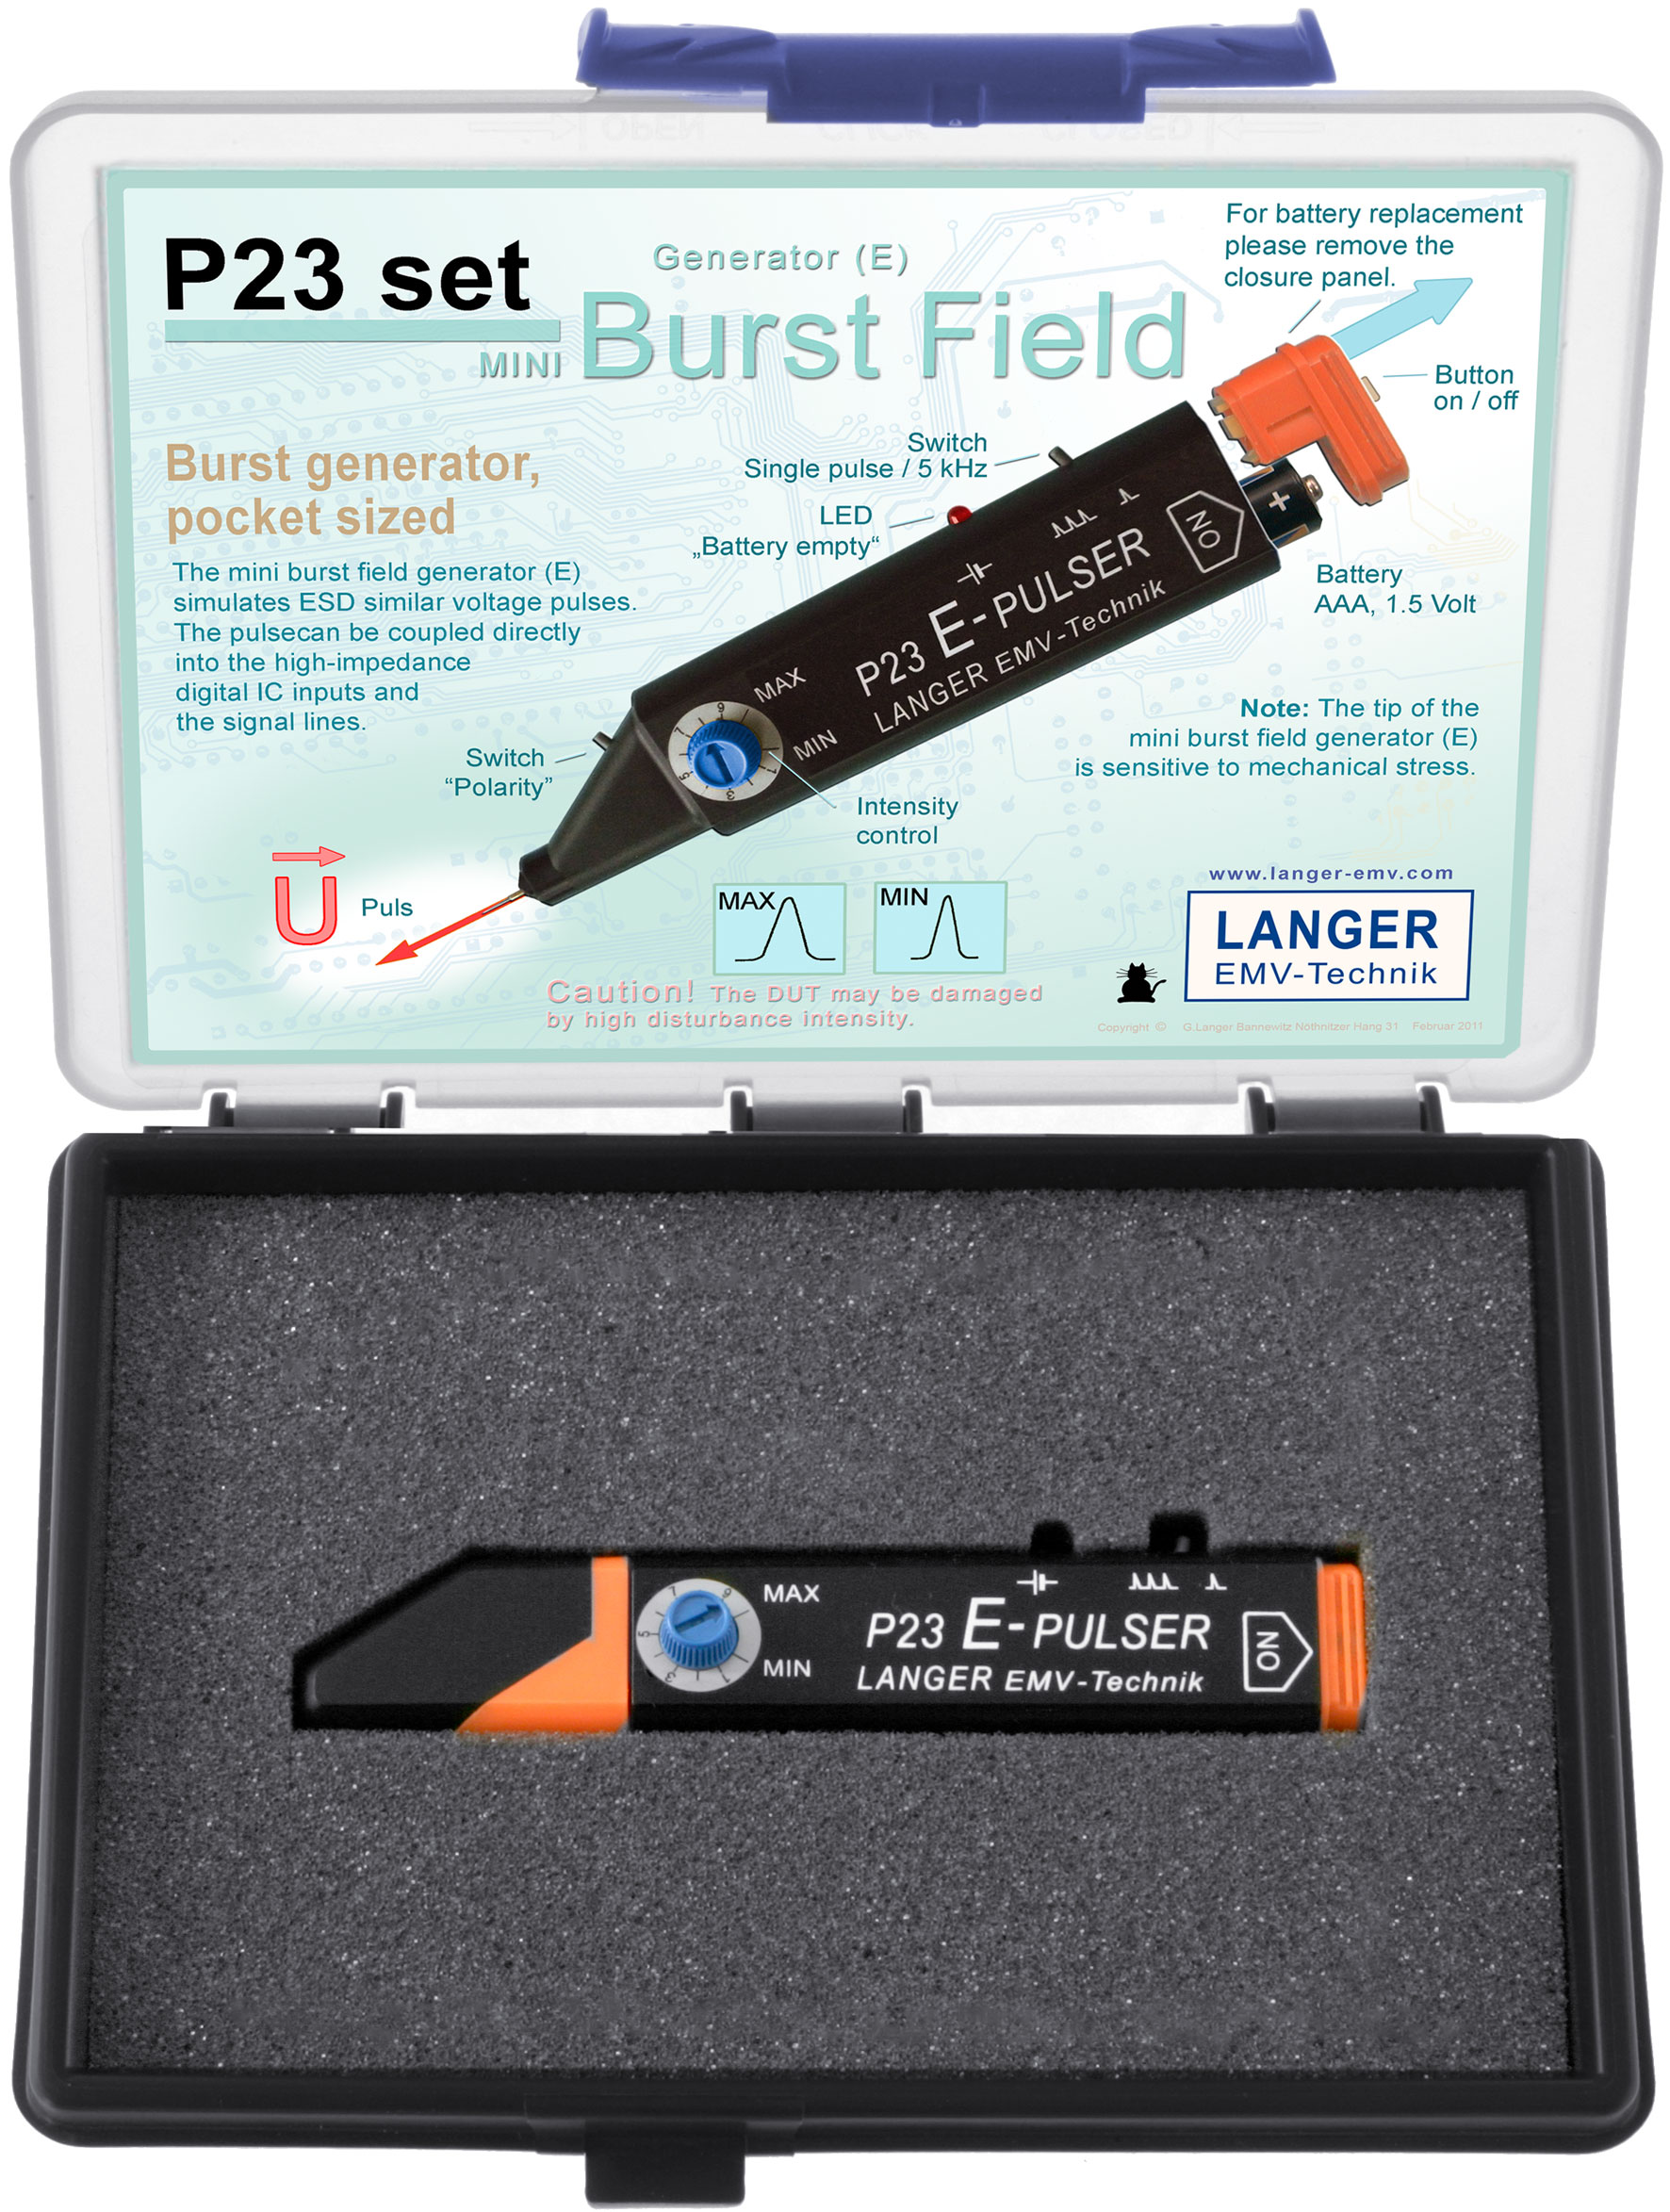 P23 set, Mini Burst Field Generator (E)